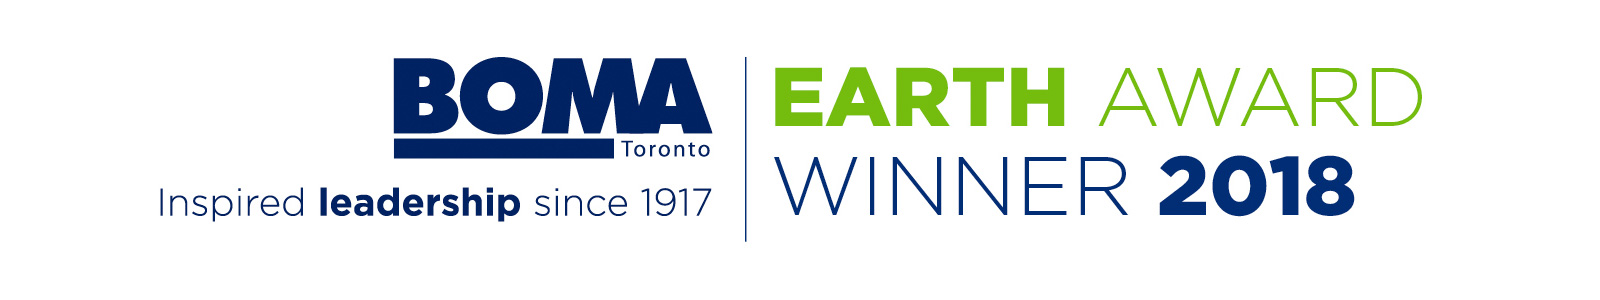 BOMA Earth Award Winner 2018